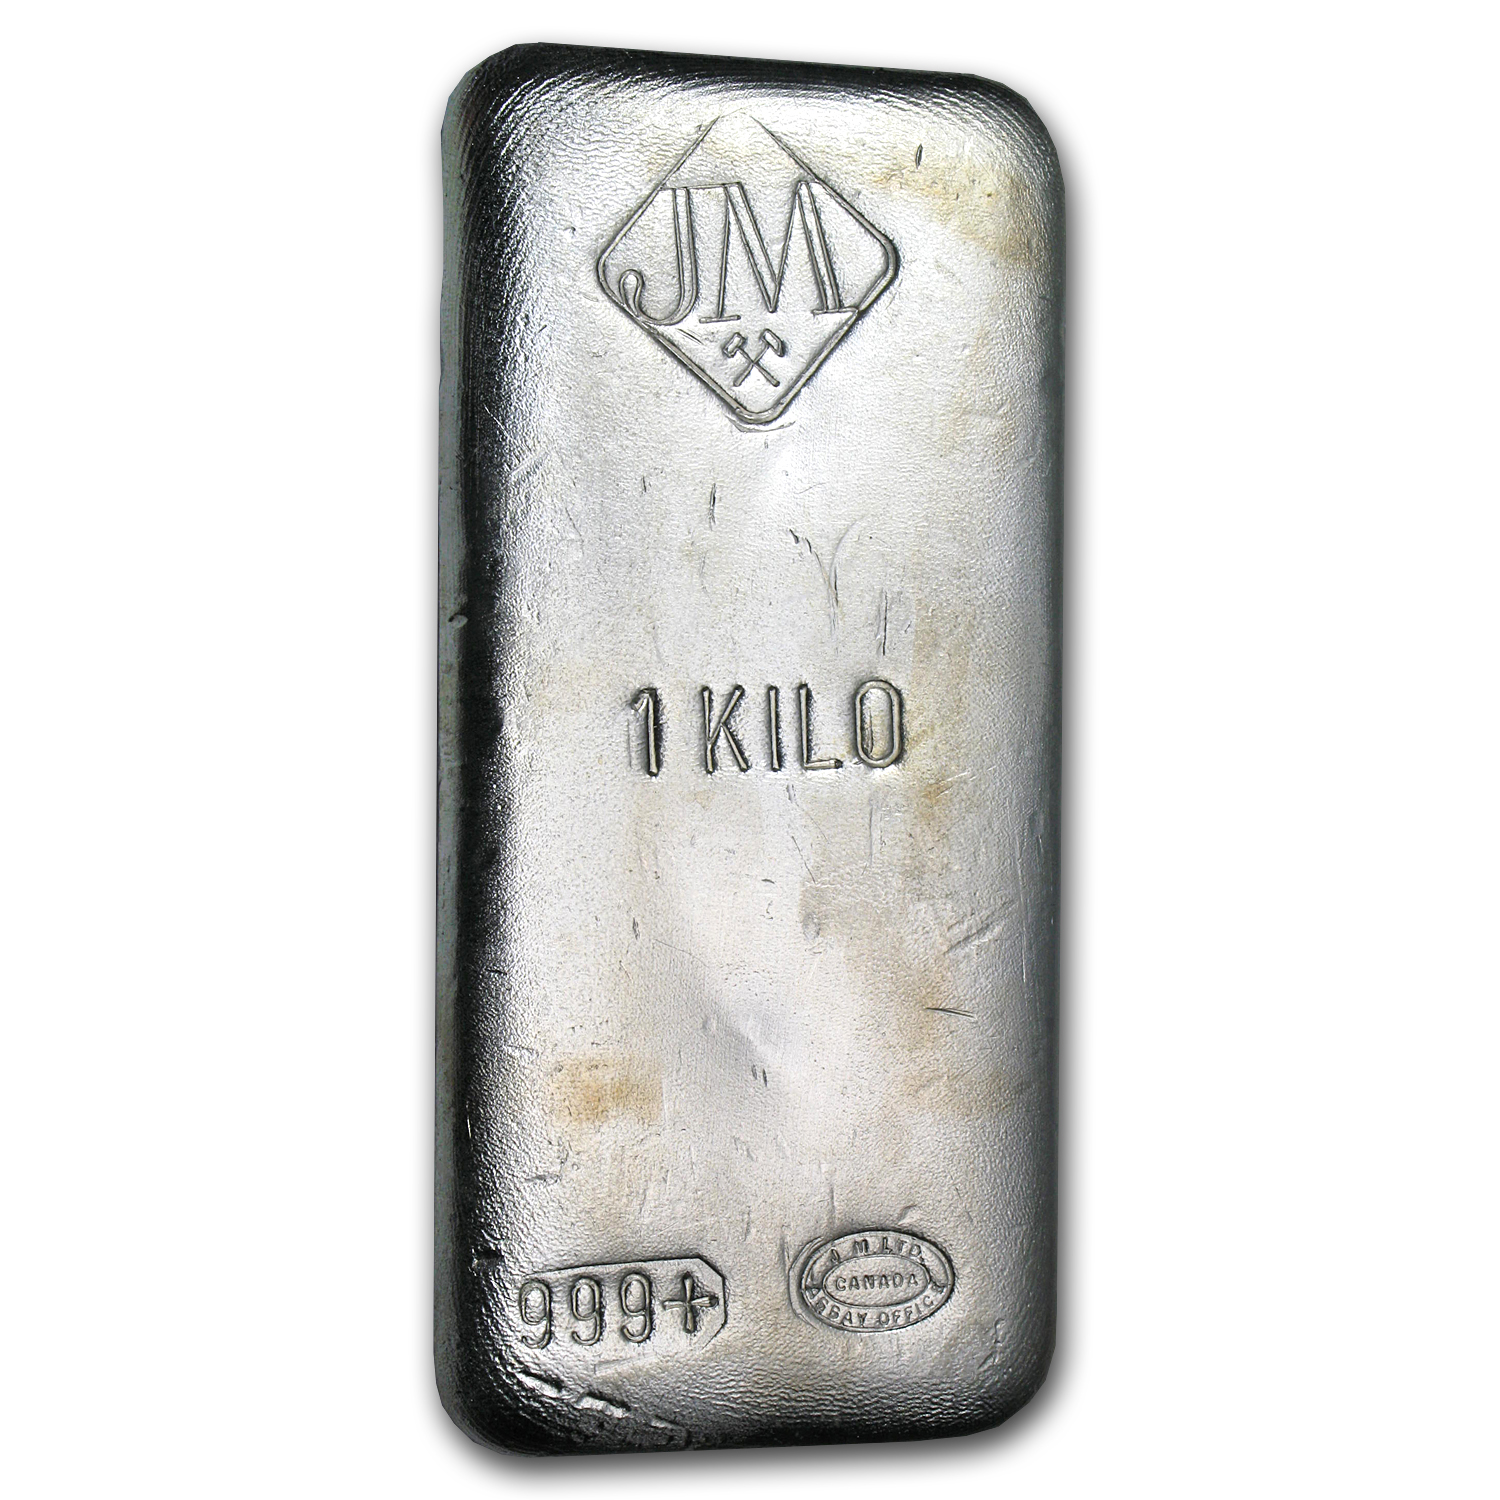 1 kilo Silver Bar - Johnson Matthey (Canada, No Serial #)